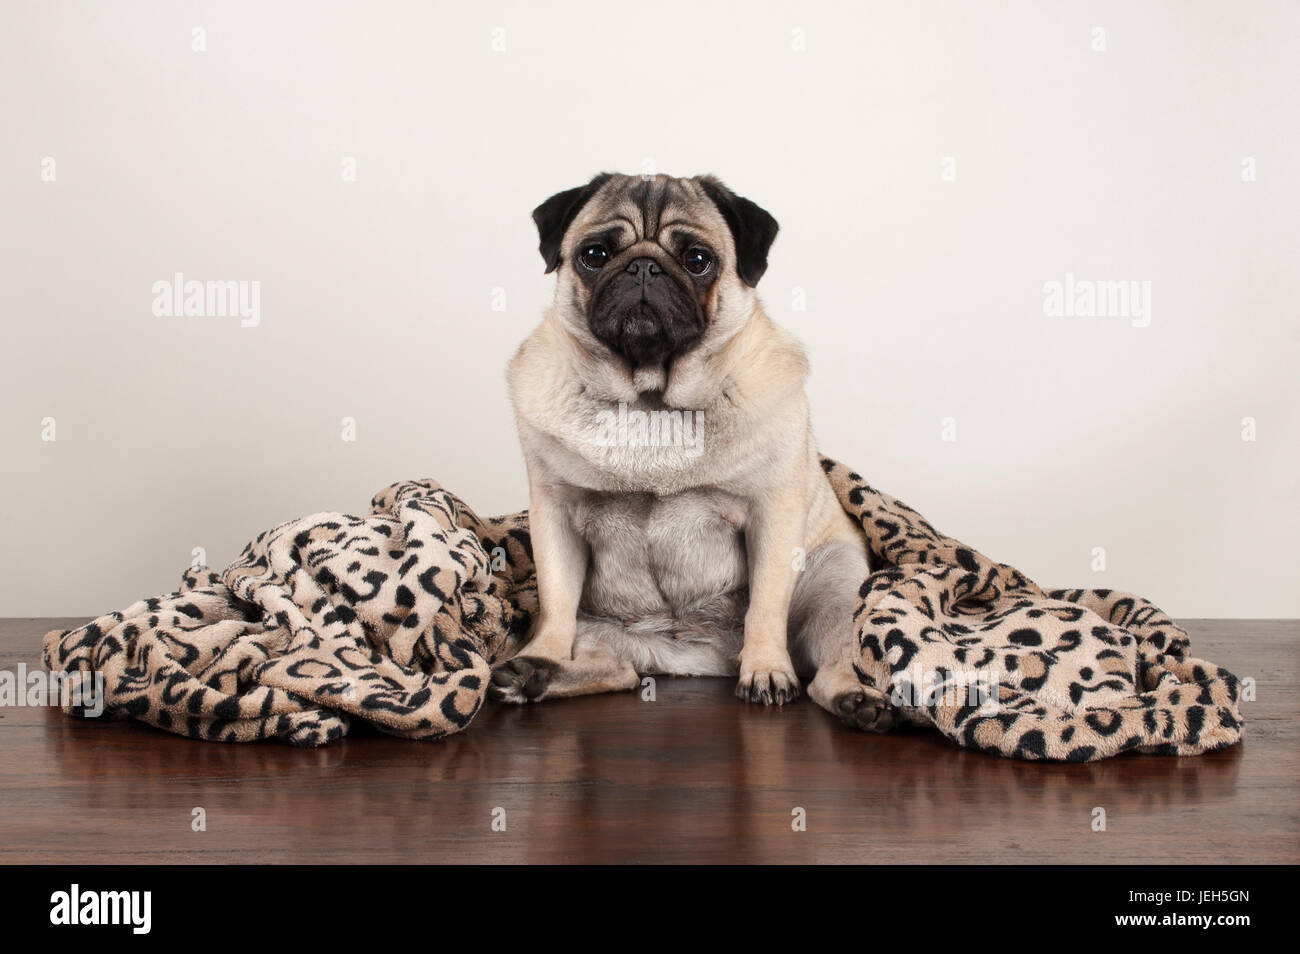 cute pug puppy dog sitting down on wooden floor with fuzzy leopard print blanket Stock Photo